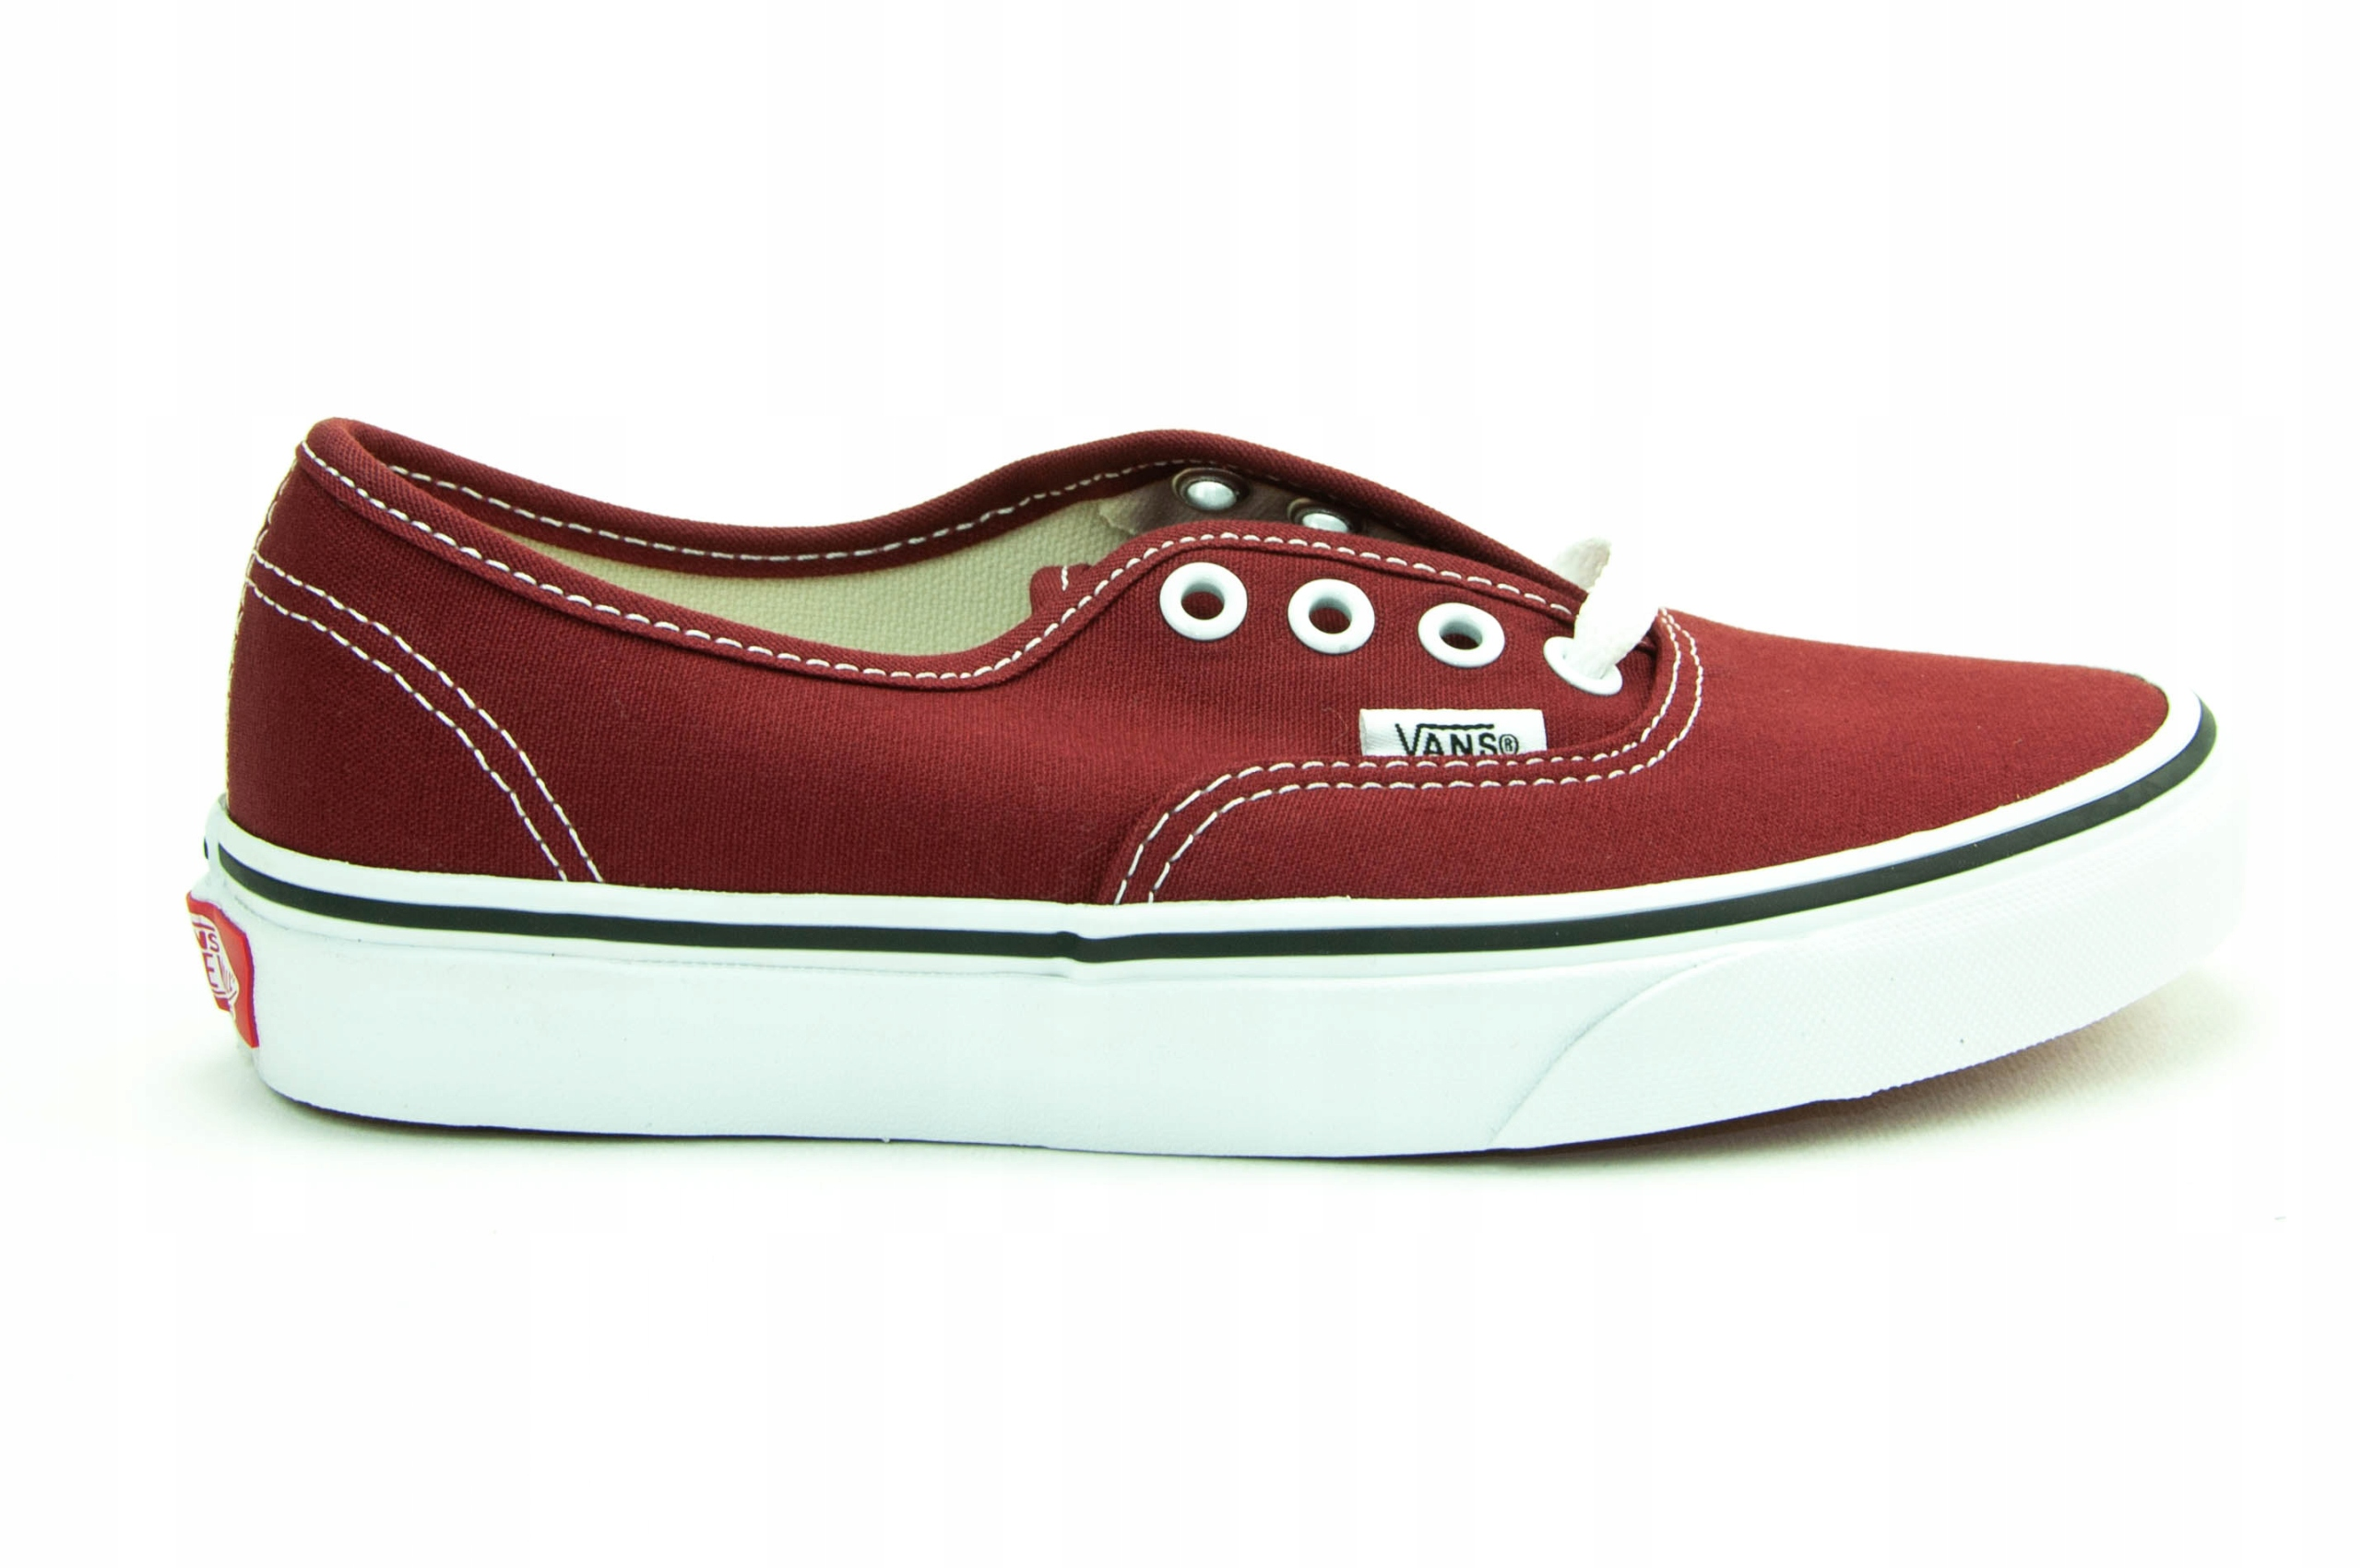 Buty Vans AUTHENTIC MADDER Sneakersy r.35